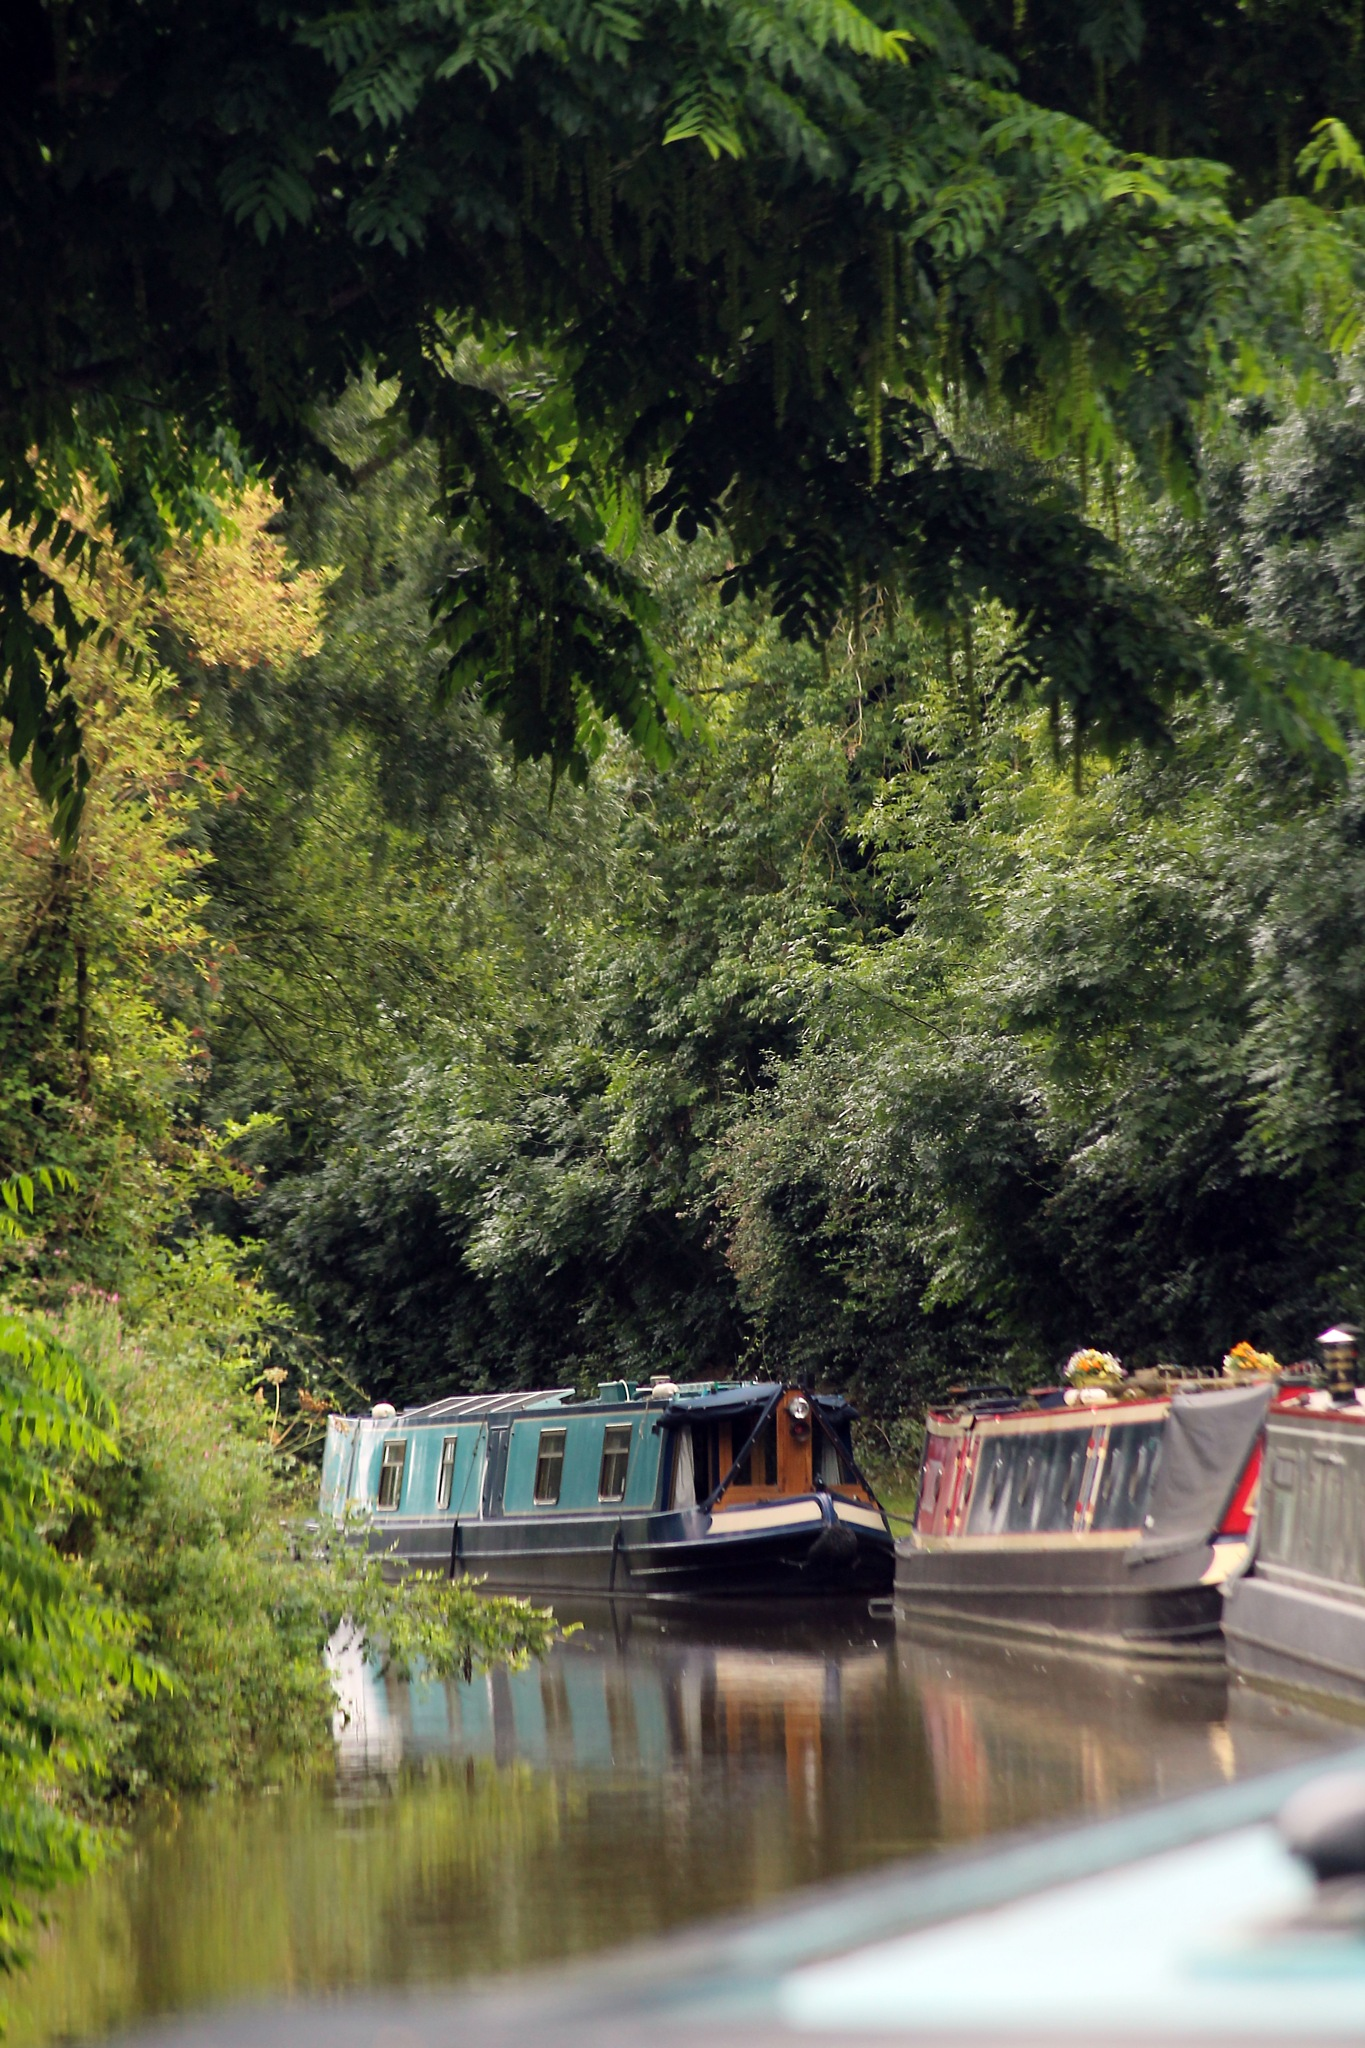 down on the tow path by David R Murphy